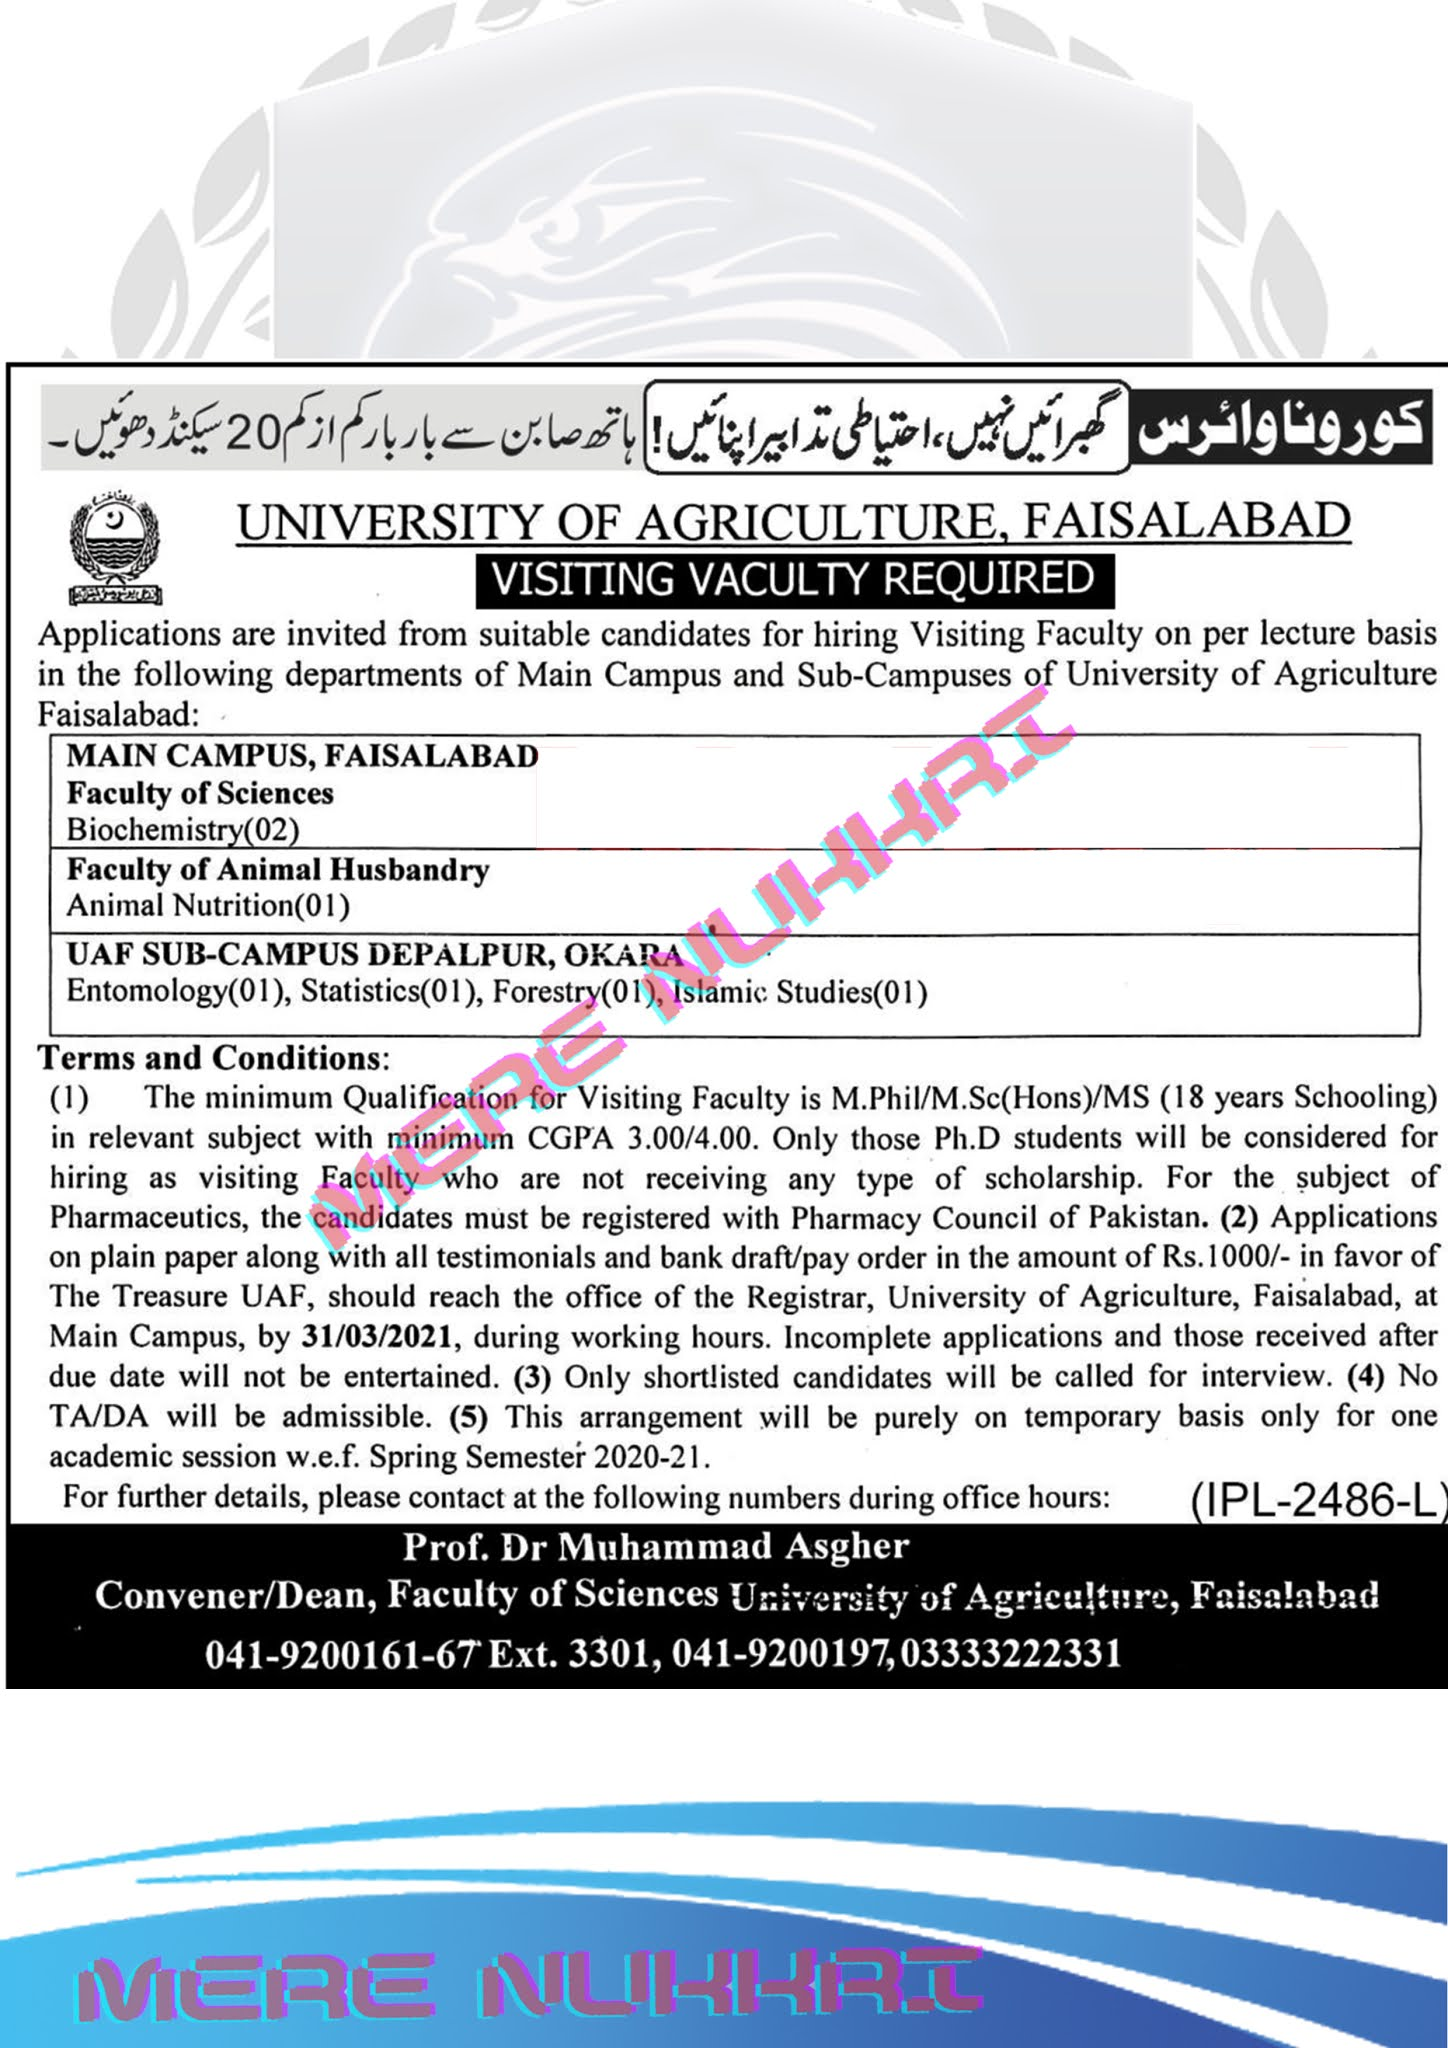 University Of Agriculture Faisalabad Visiting Faculty Jobs 2021| UAF Jobs | New Jobs